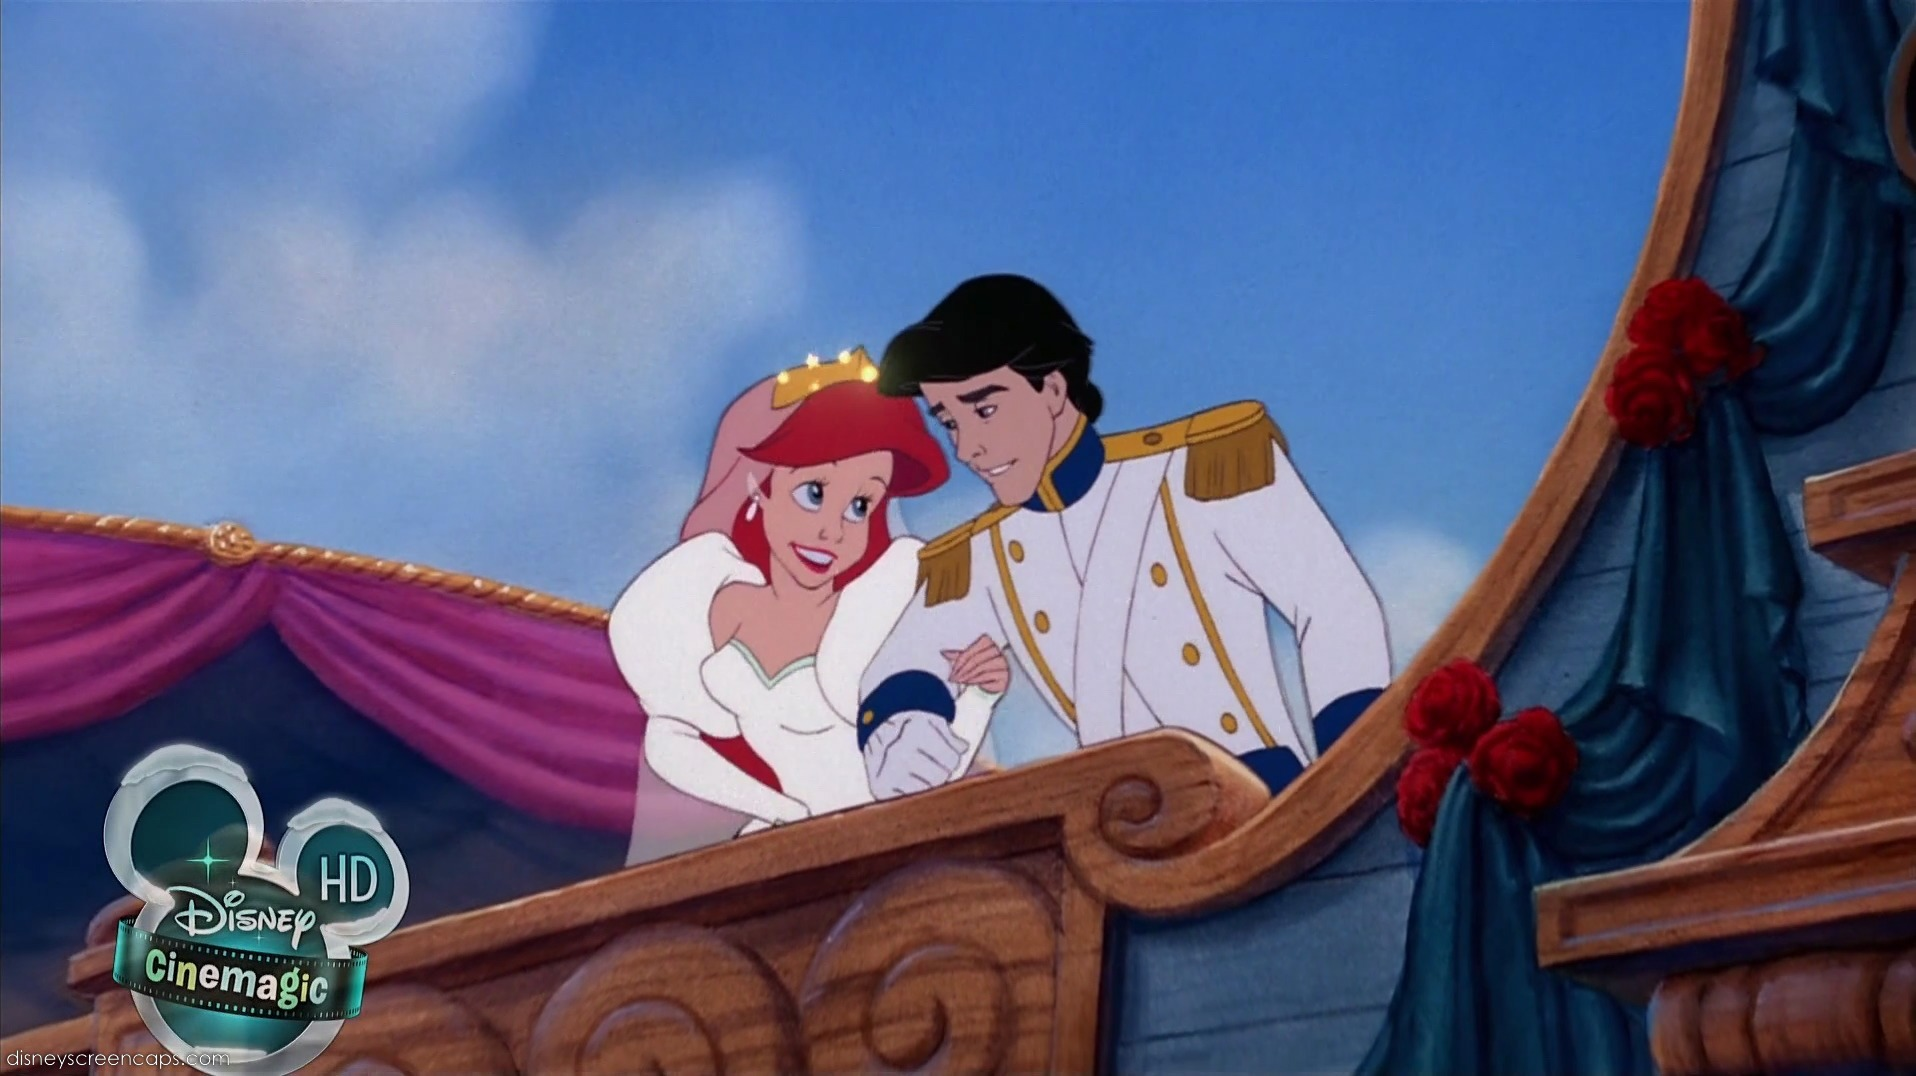 Which Disney Prince looks Handsome with his Wedding Suit? - Disney ...